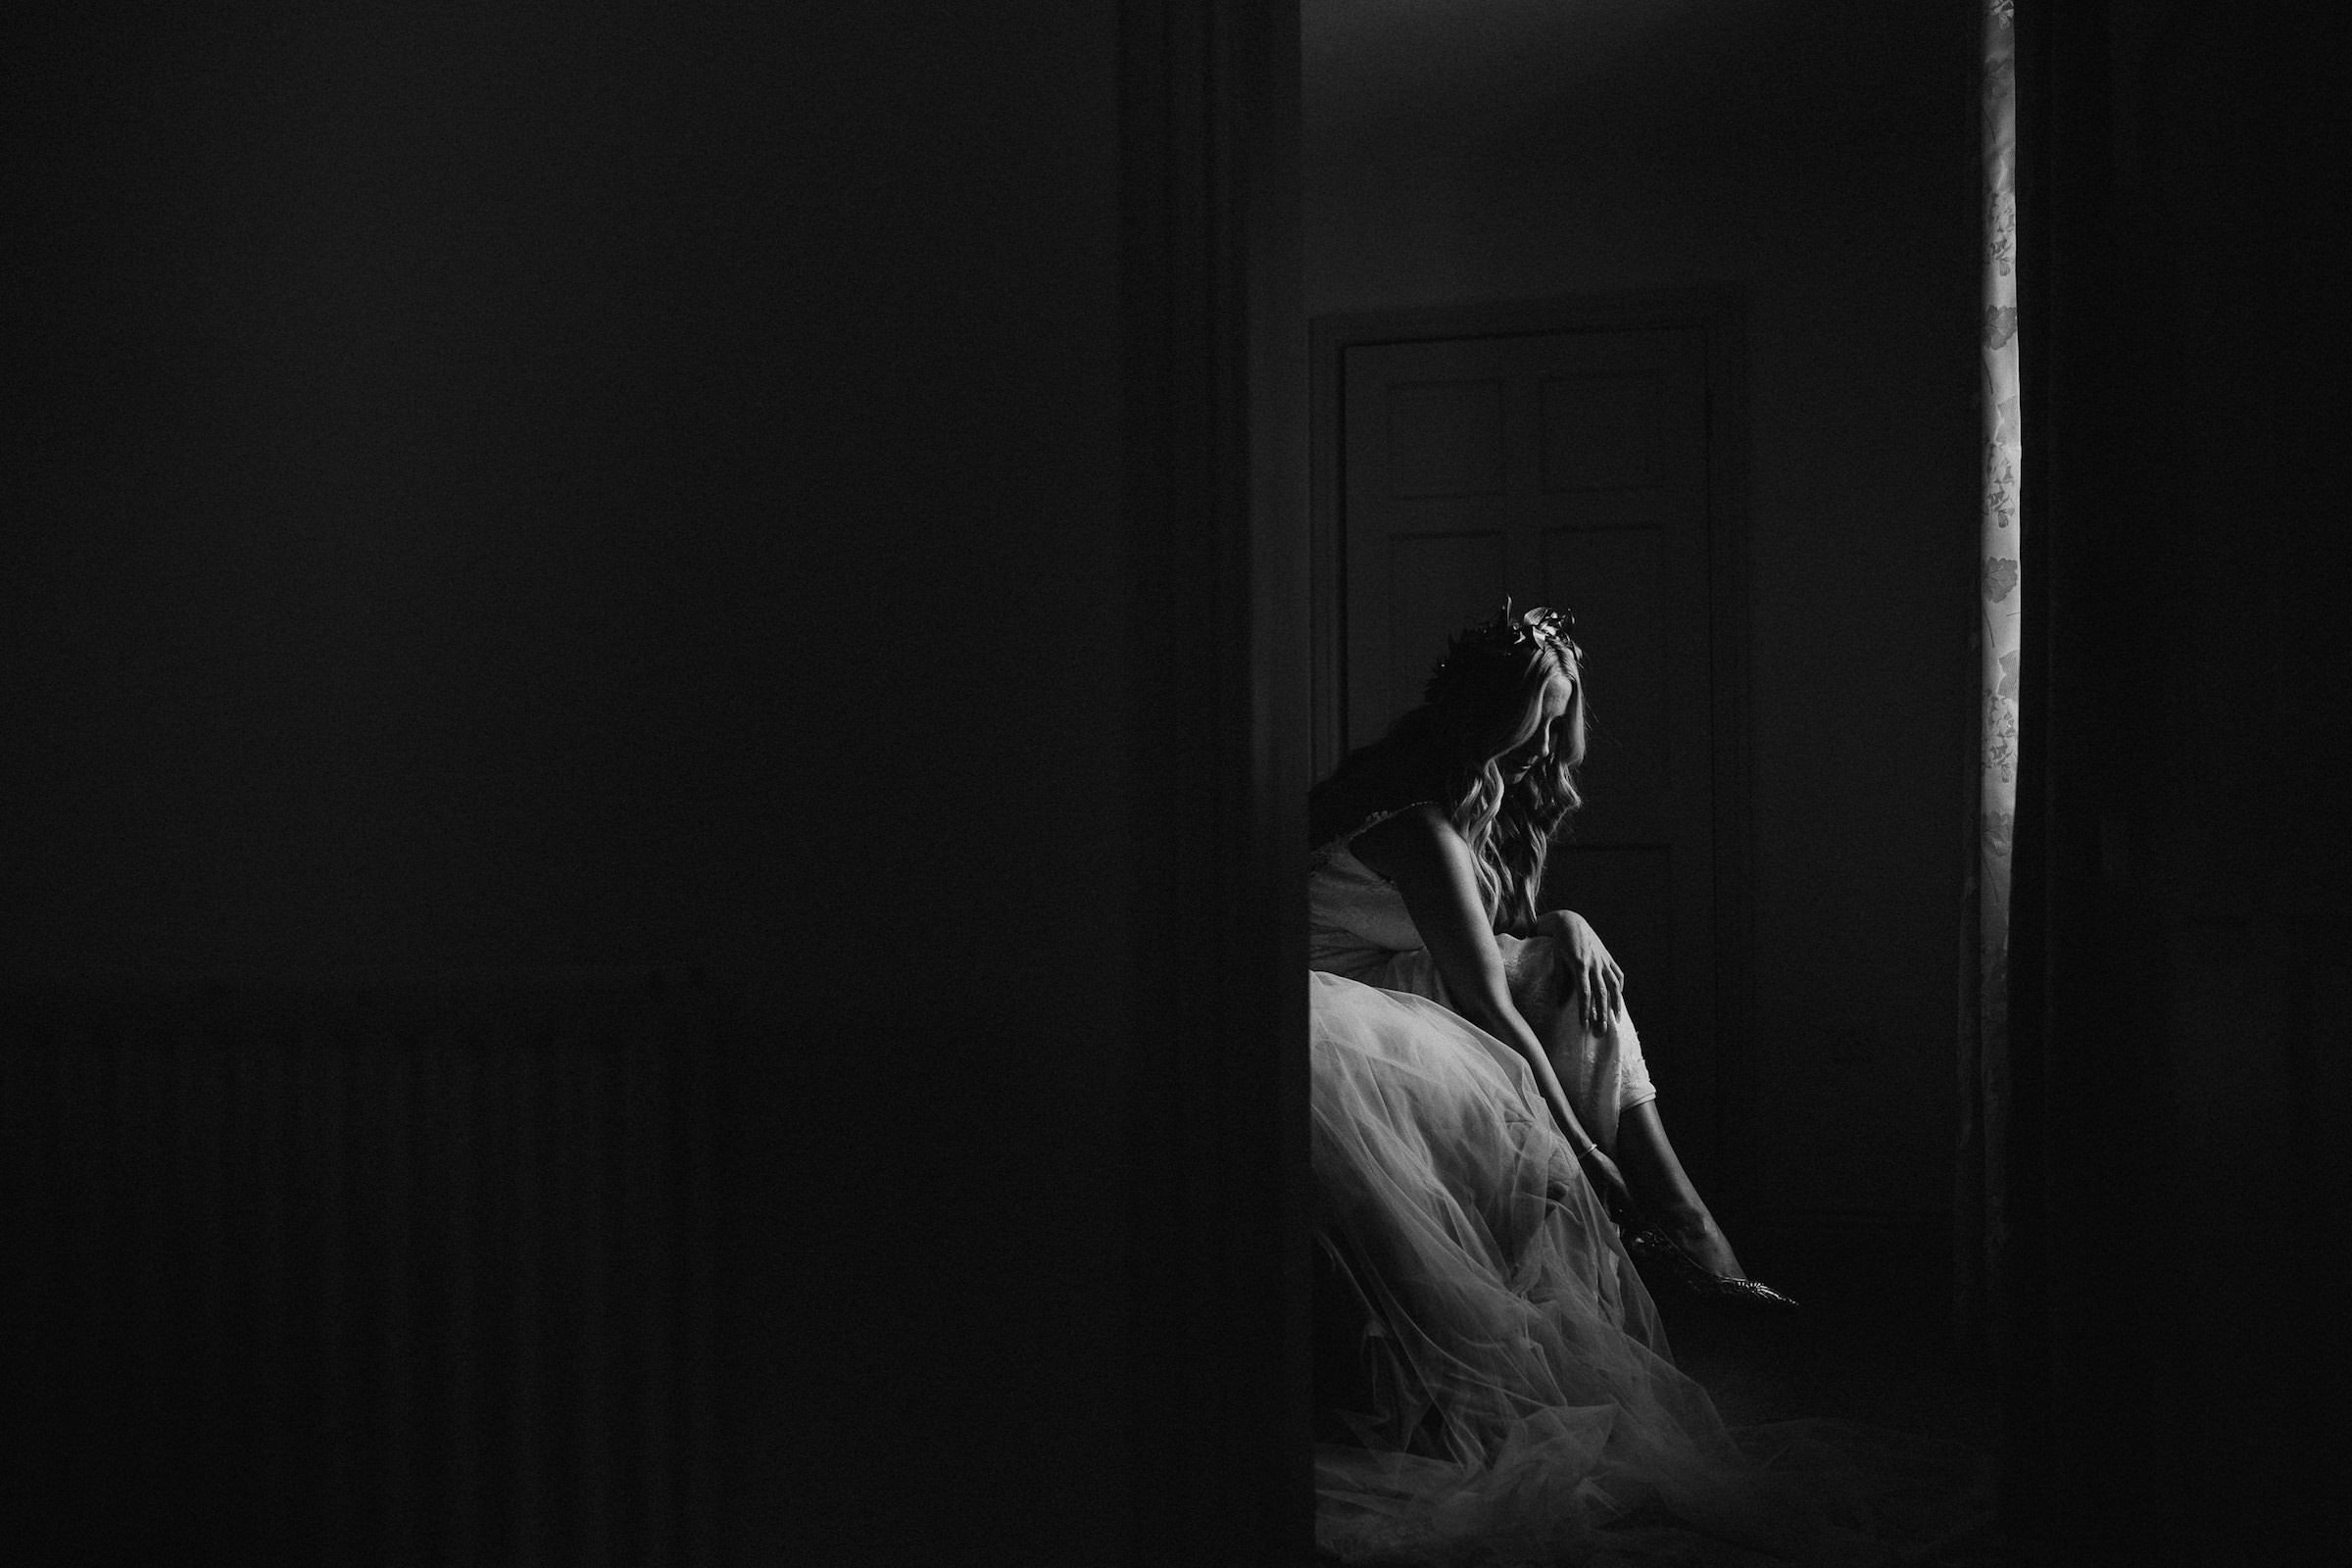 Bride buckles her shoes in diffused window light - photo by White Cat Studios